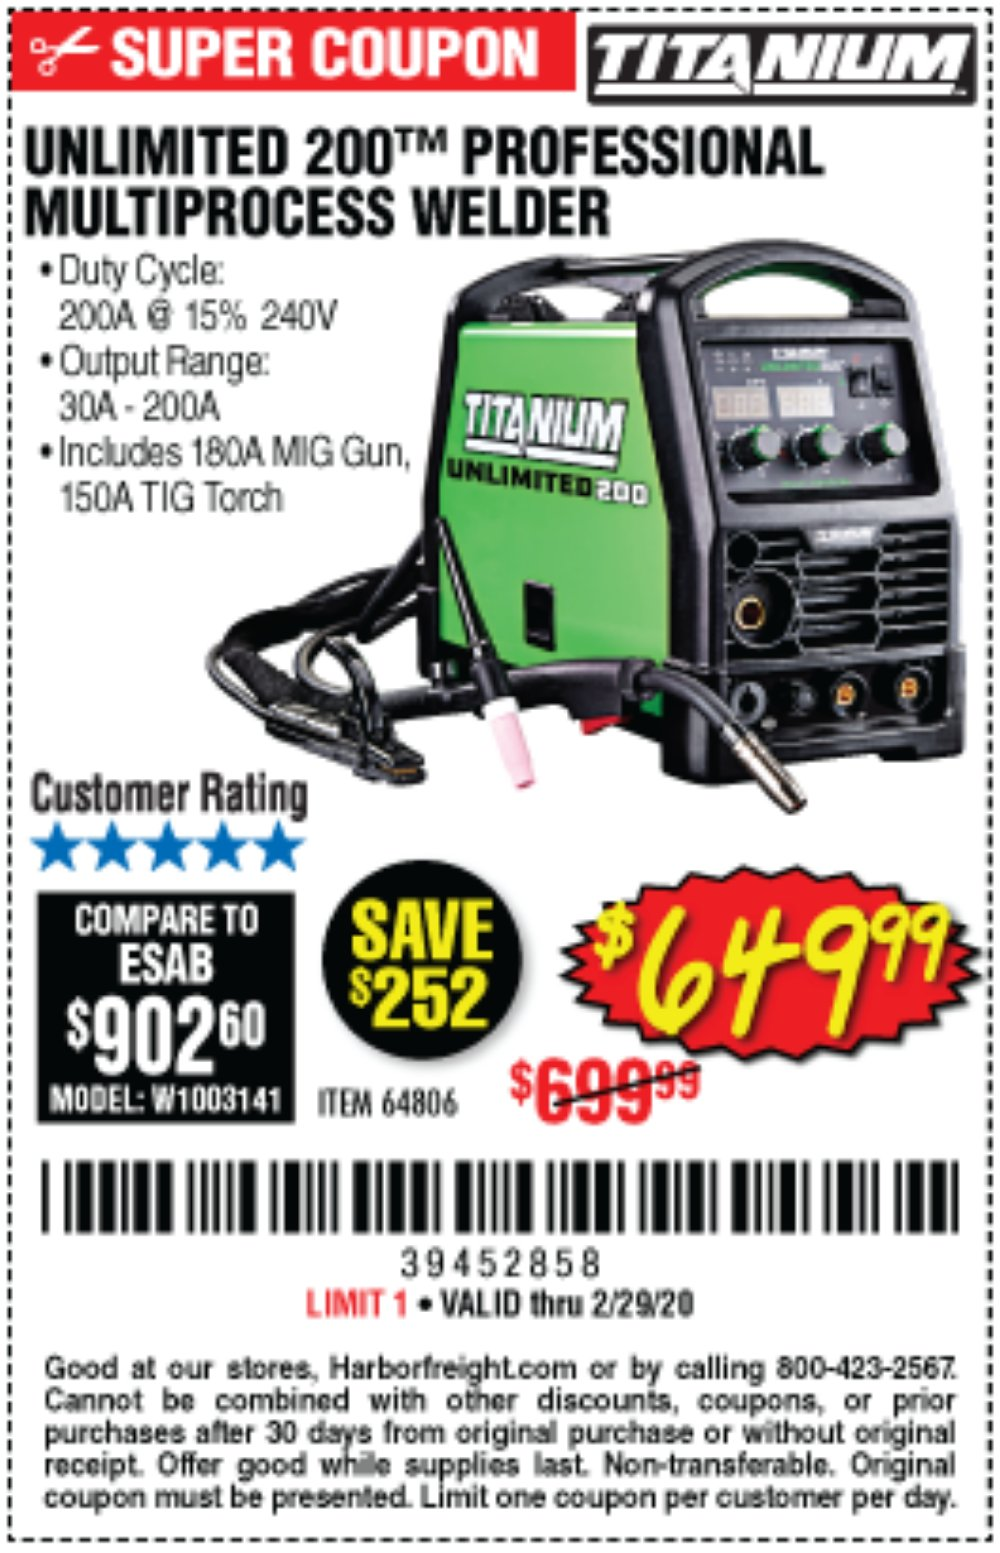 Harbor Freight Coupon, HF Coupons - Titanium Unlimited 200 Professional Multiprocess Welder